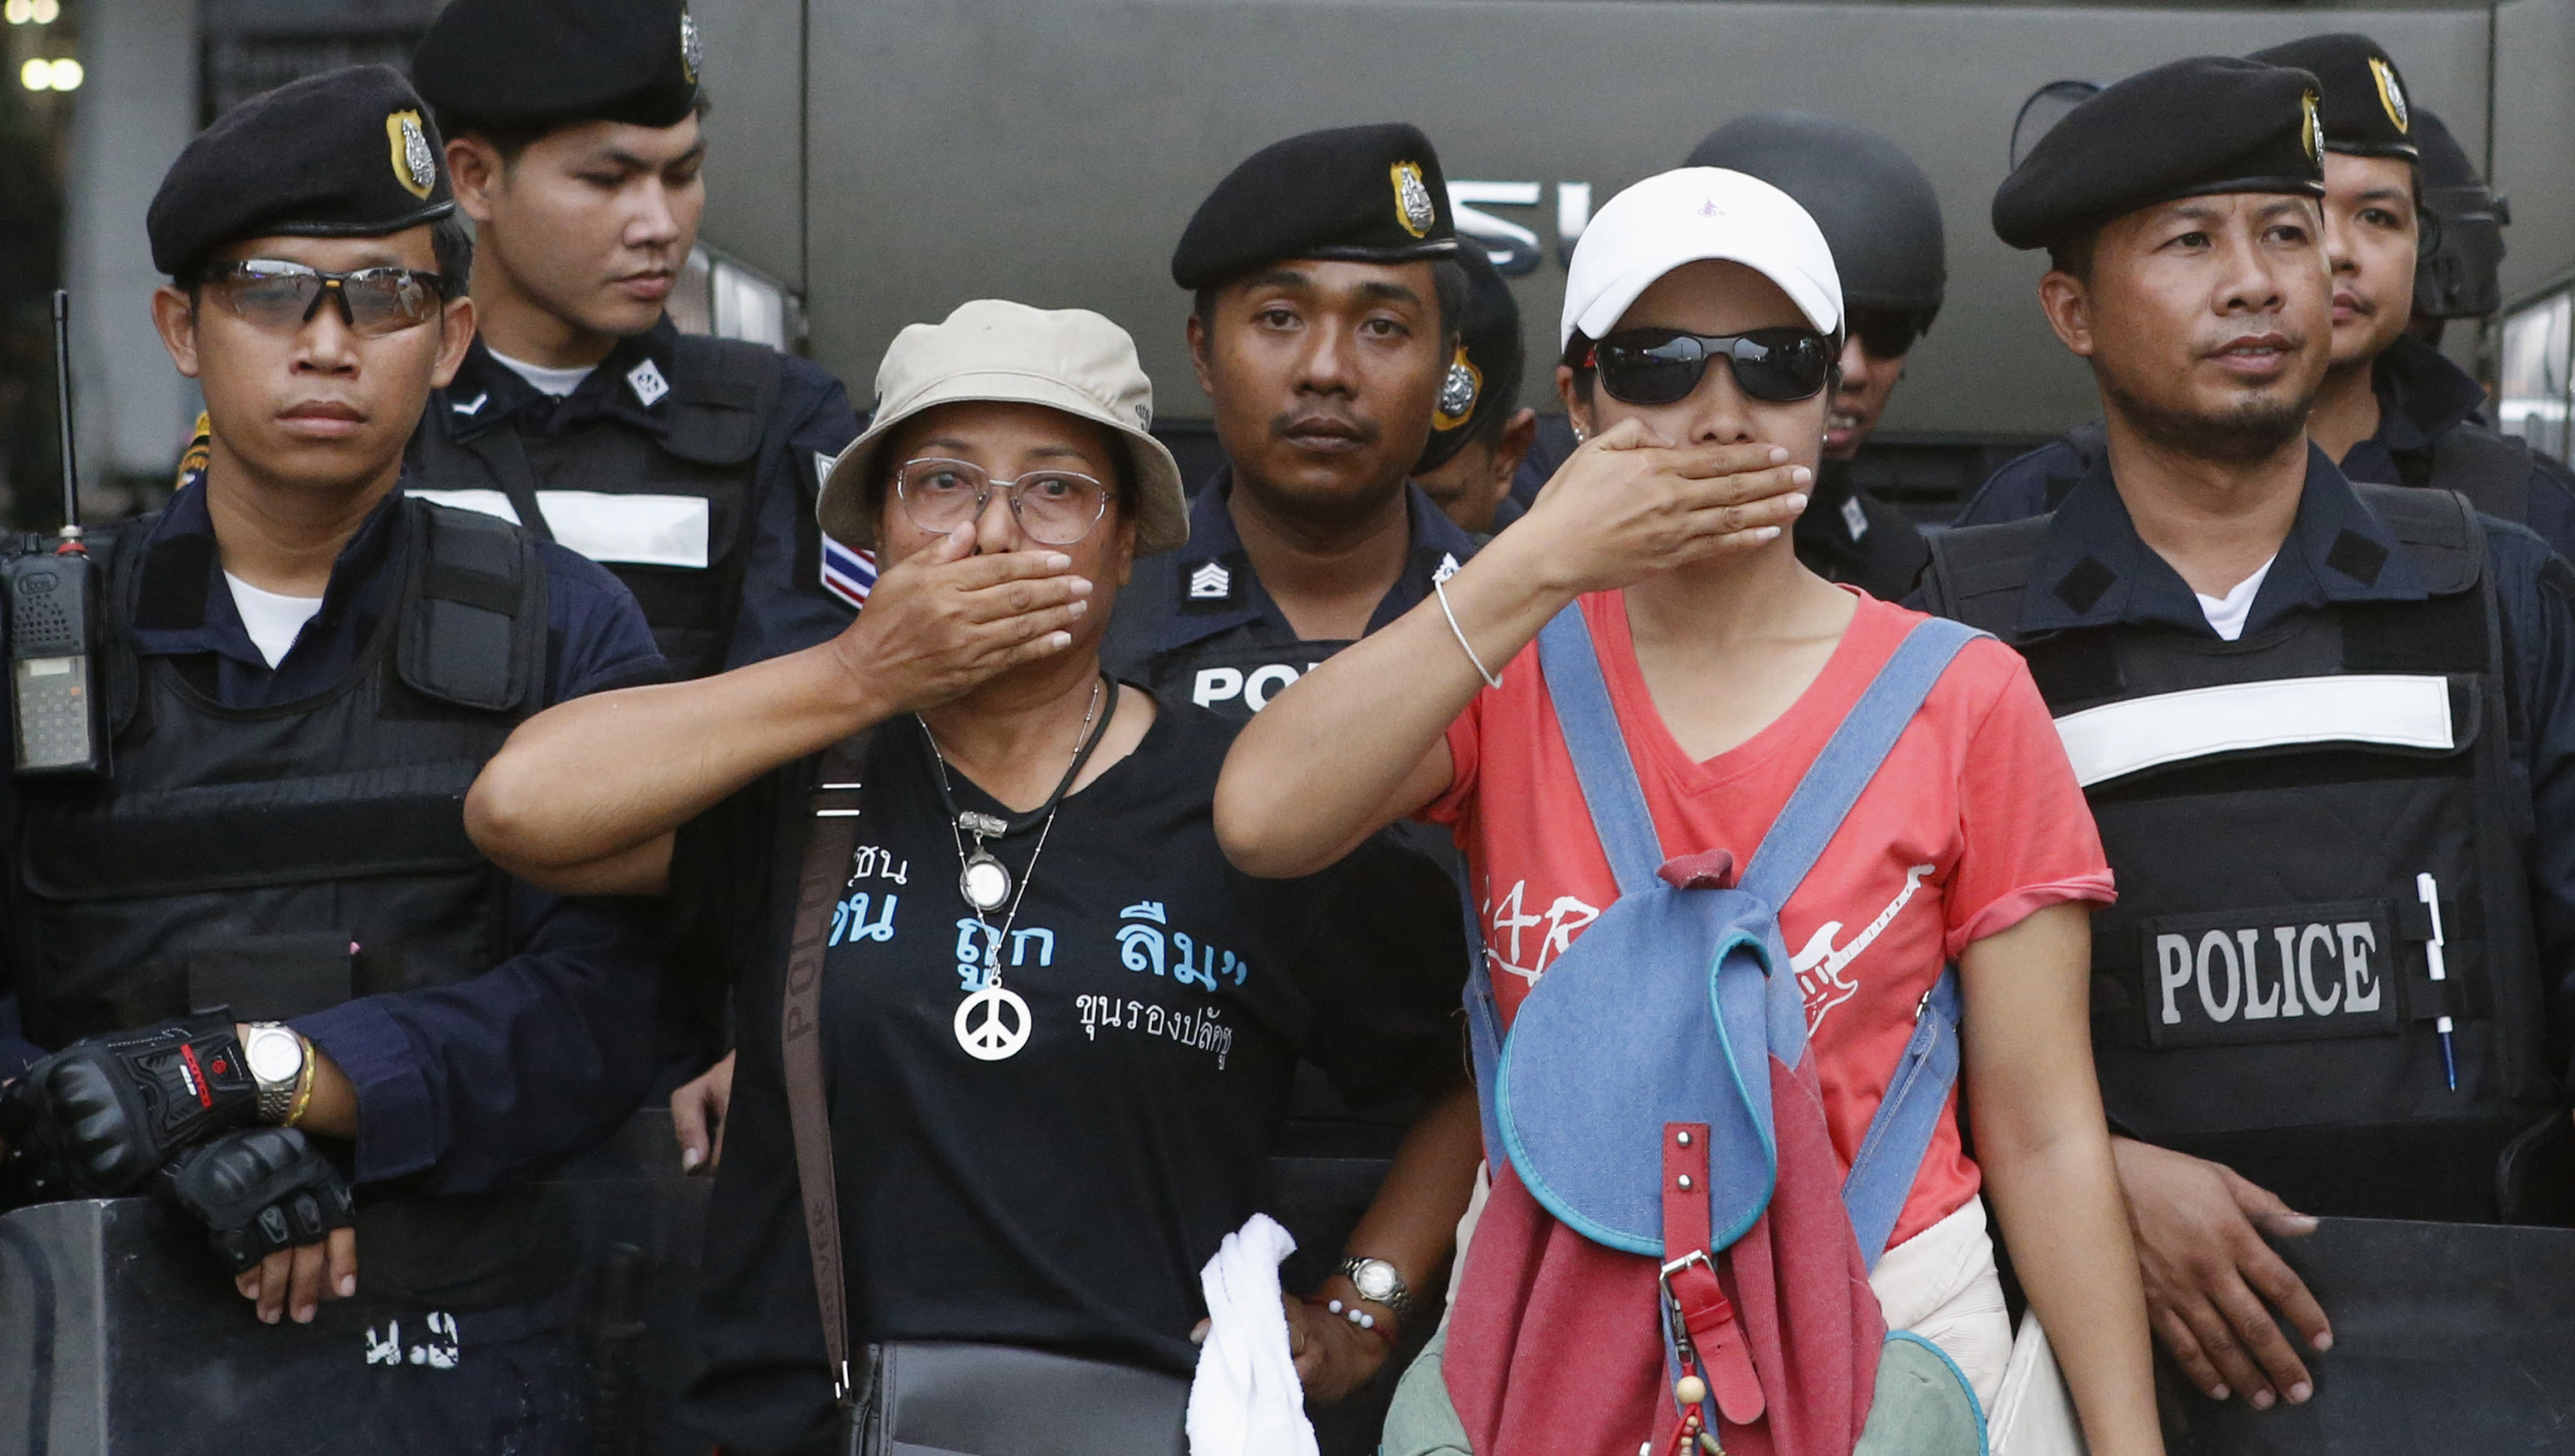 Hat Stand Freedom Thailand In Wake Of Coup Media Freedom Threatened Repressed